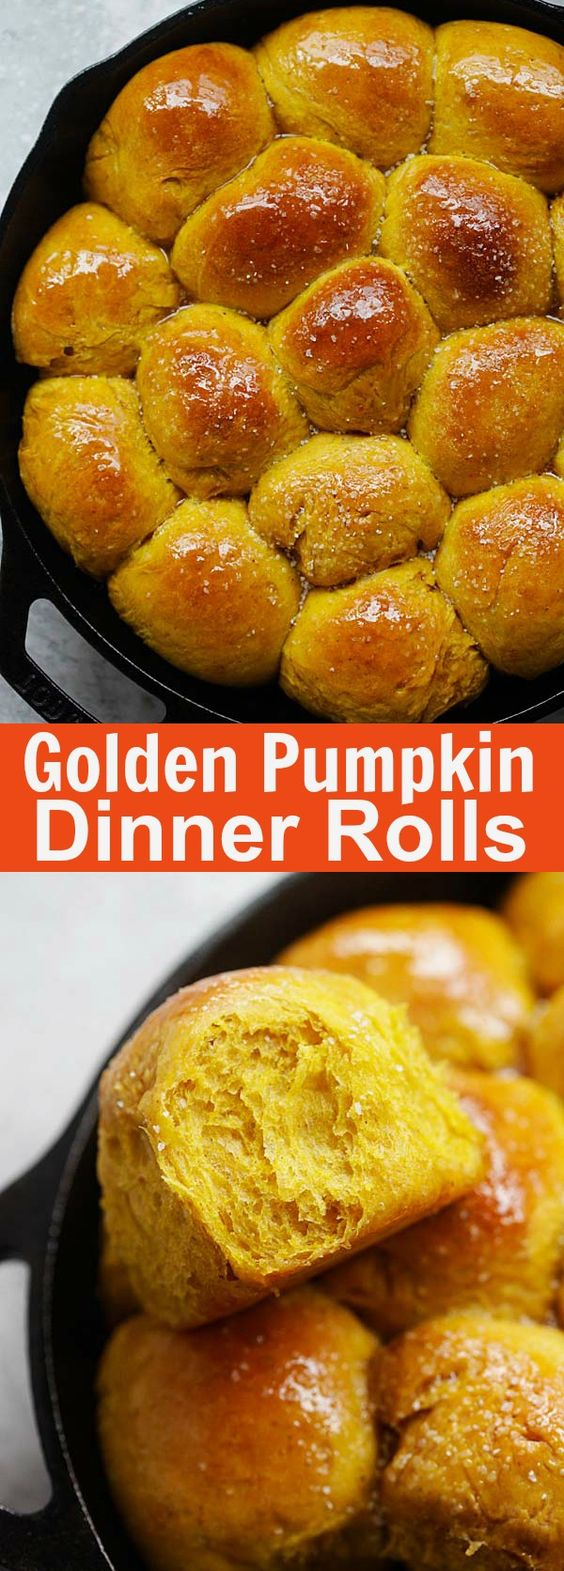 Pumpkin Dinner Rolls - easiest and best homemade pumpkin dinner rolls on skillet. So soft and pillowy you just can't stop eating | rasamalaysia.com